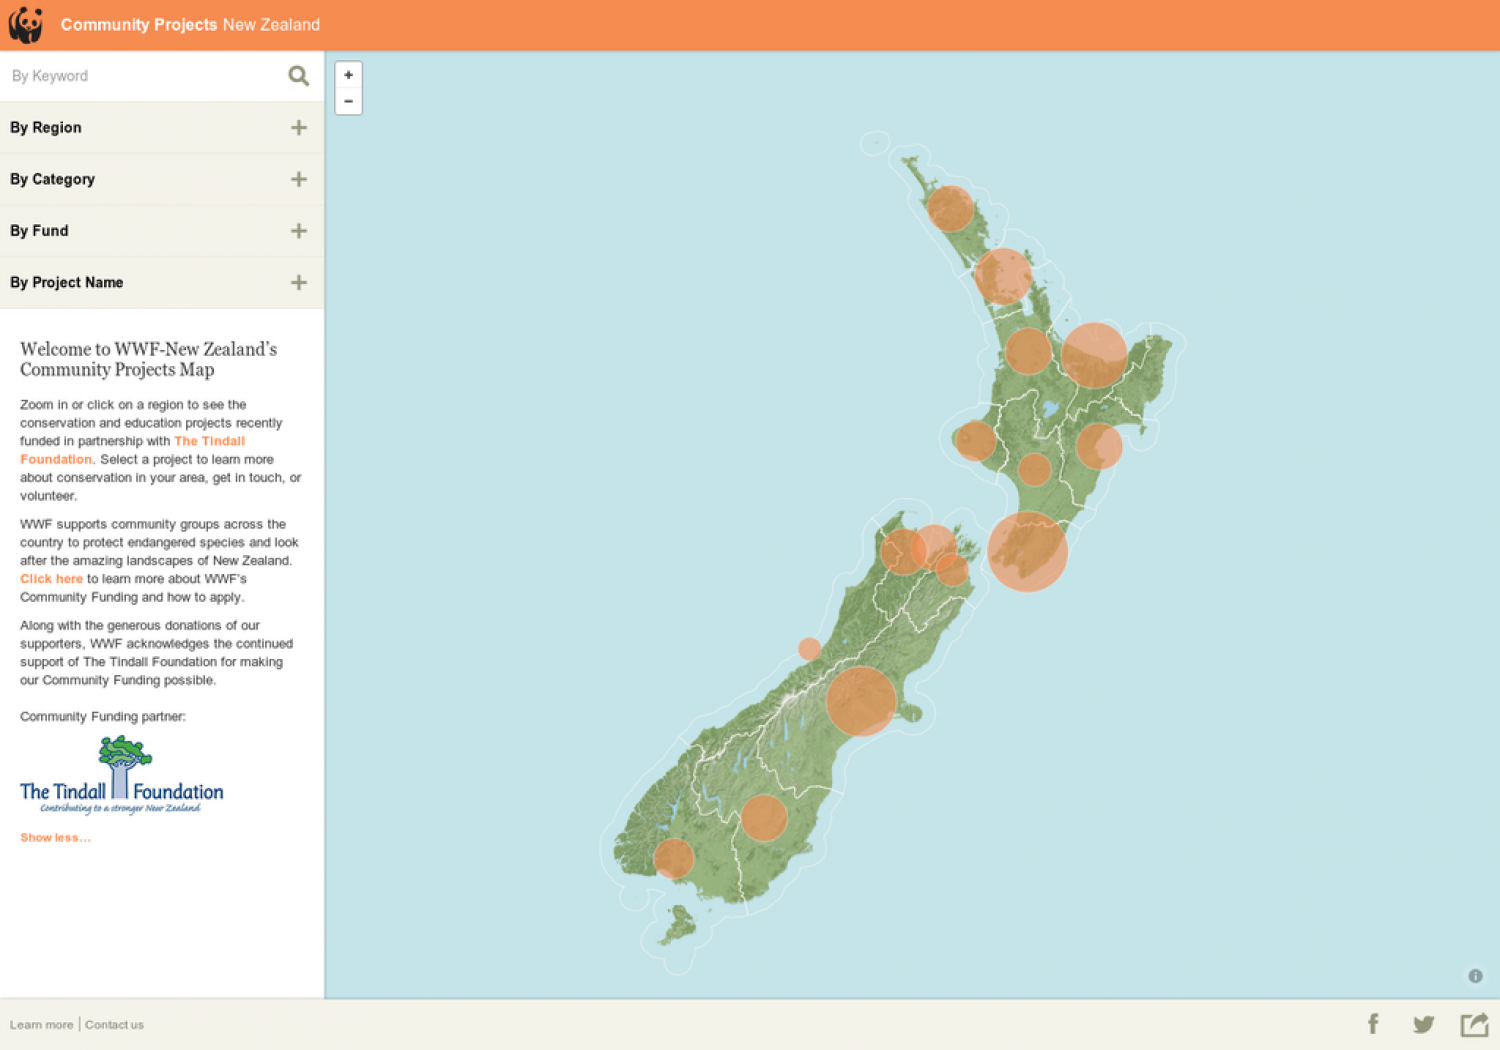 Community Projects New Zealand Infographic